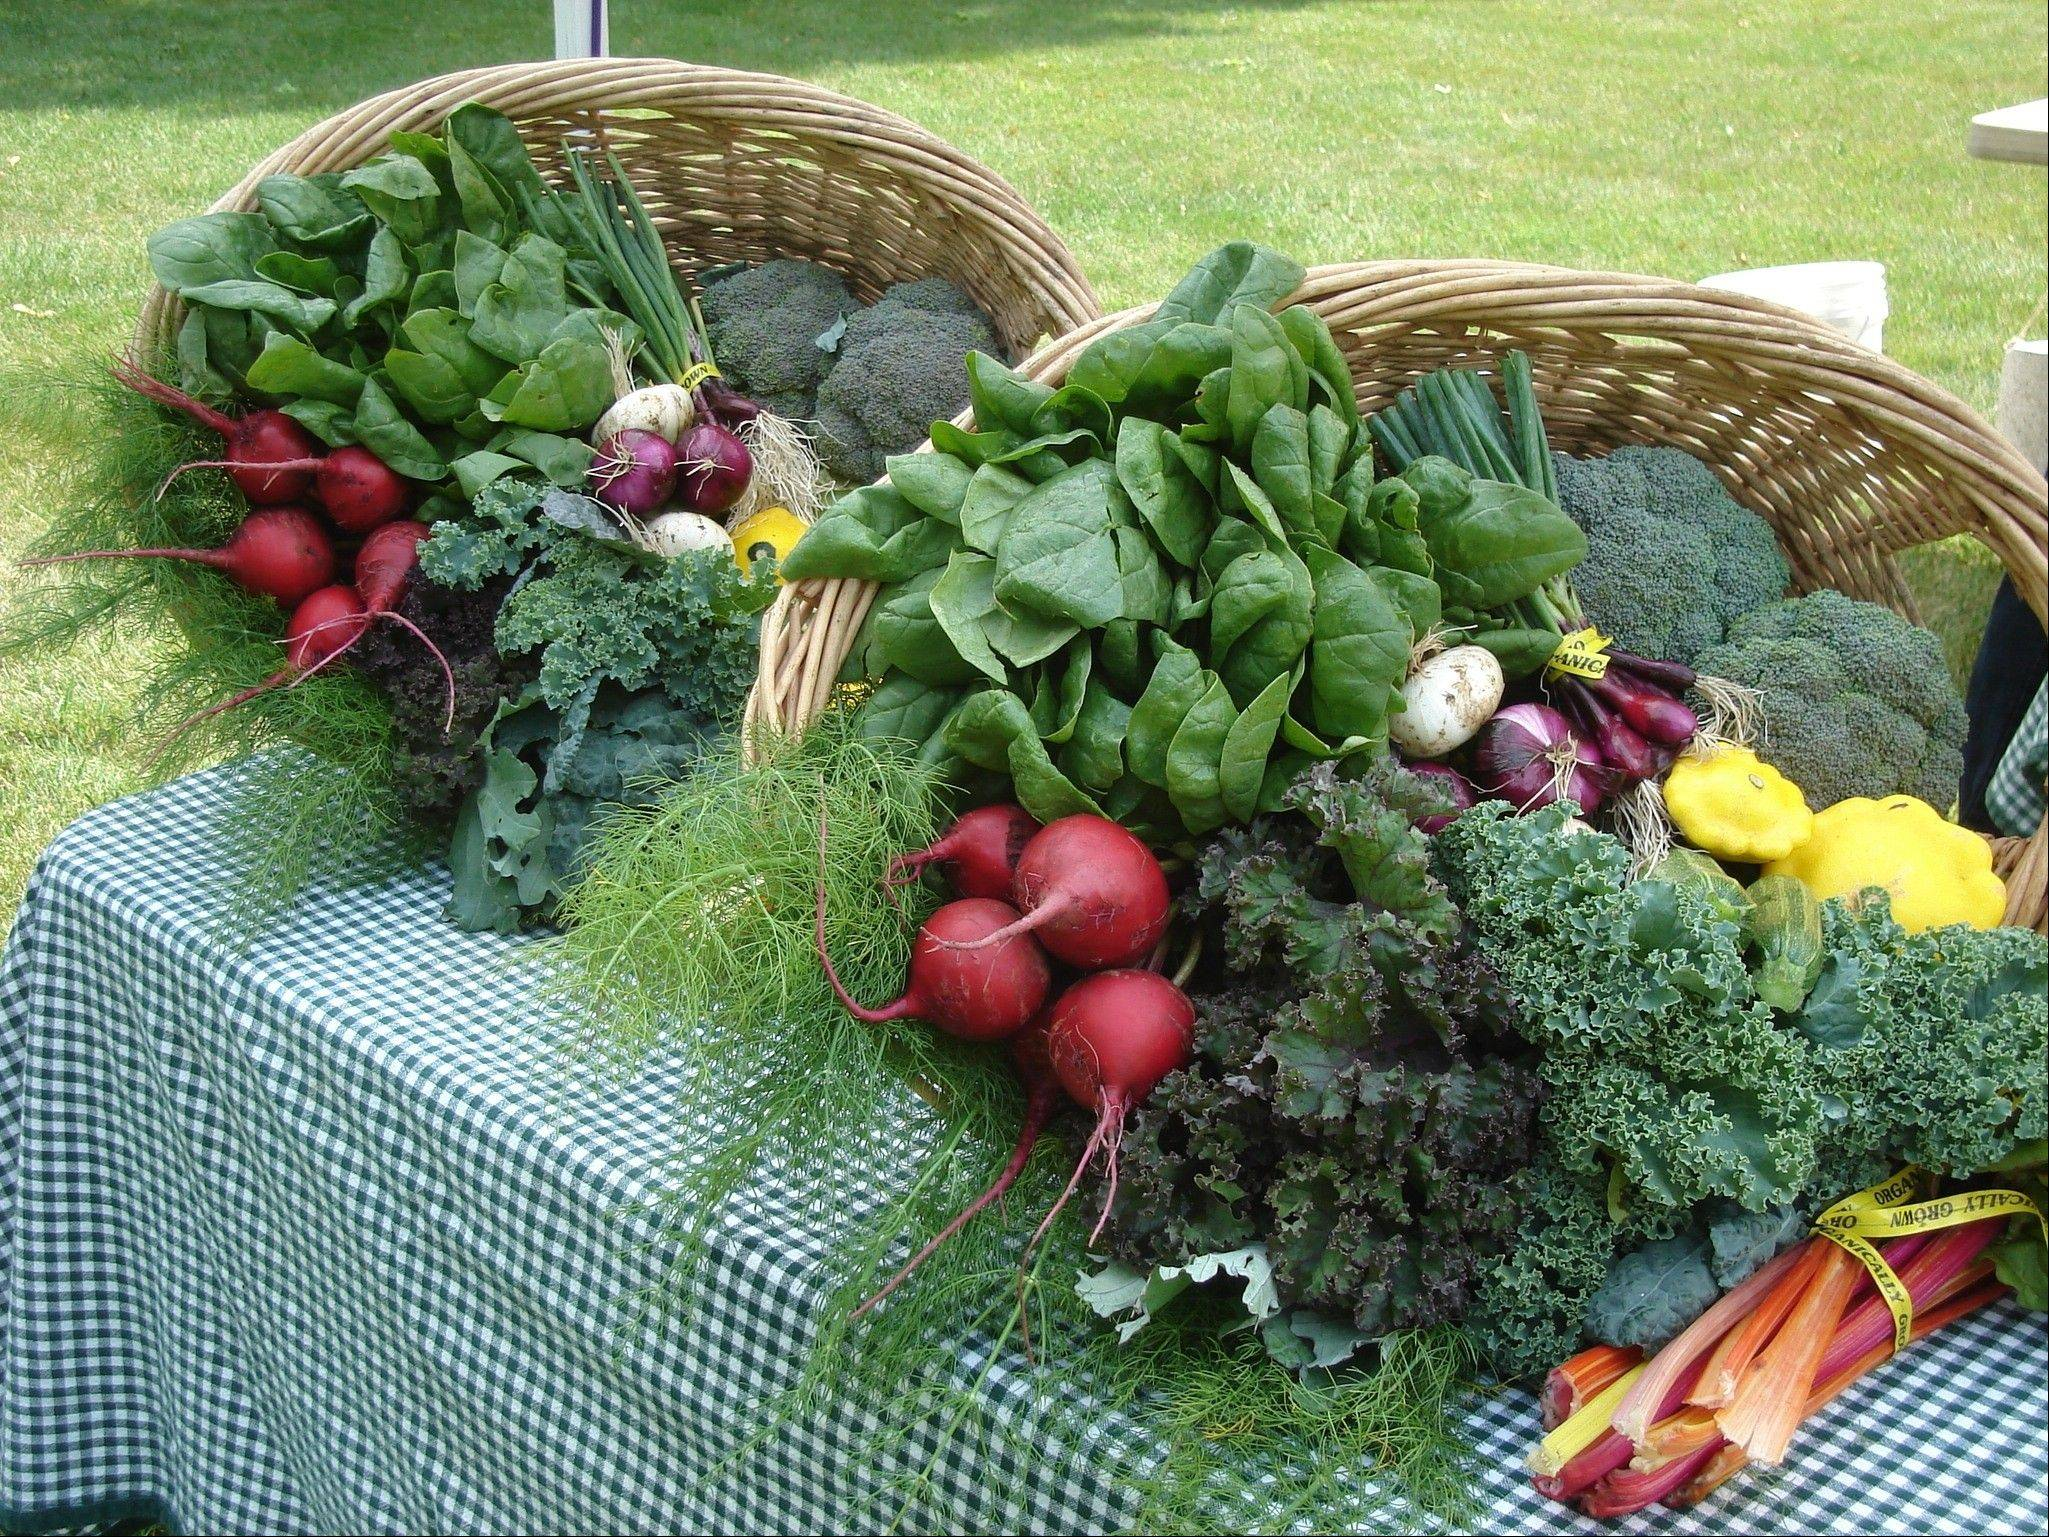 Many of the vegetables we eat are actually the leaves of plants. These baskets of home-grown organic vegetables from Prairie Crossing Farms are brimming with broccoli, patty pan squash, Swiss chard, kale, fennel, turnips and spinach